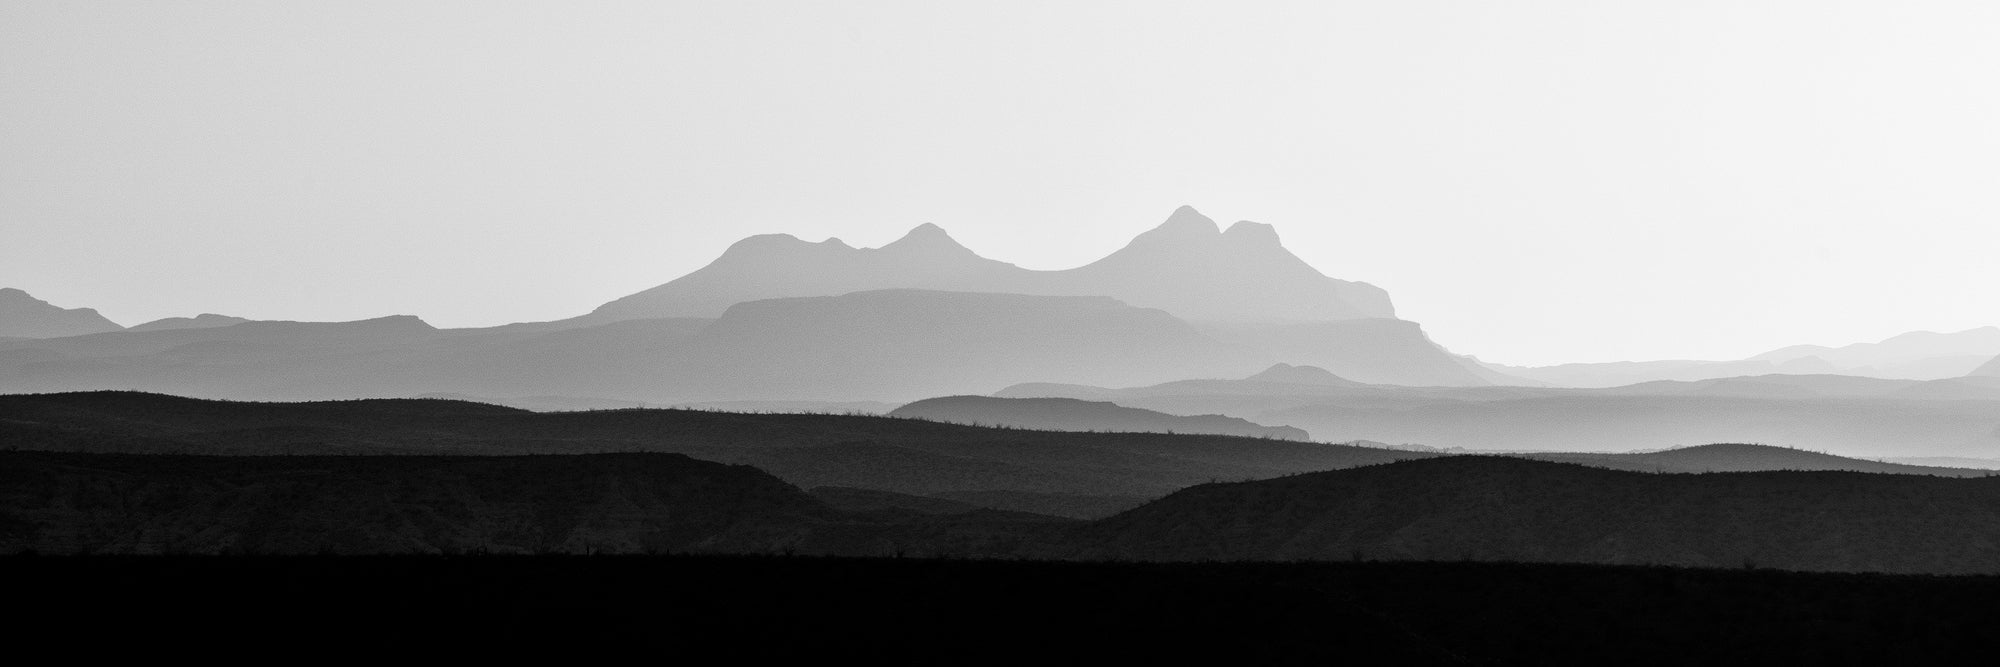 Hazy Mountain Sunrise Panorama: Black and White Landscape Photograph by Keith Dotson.